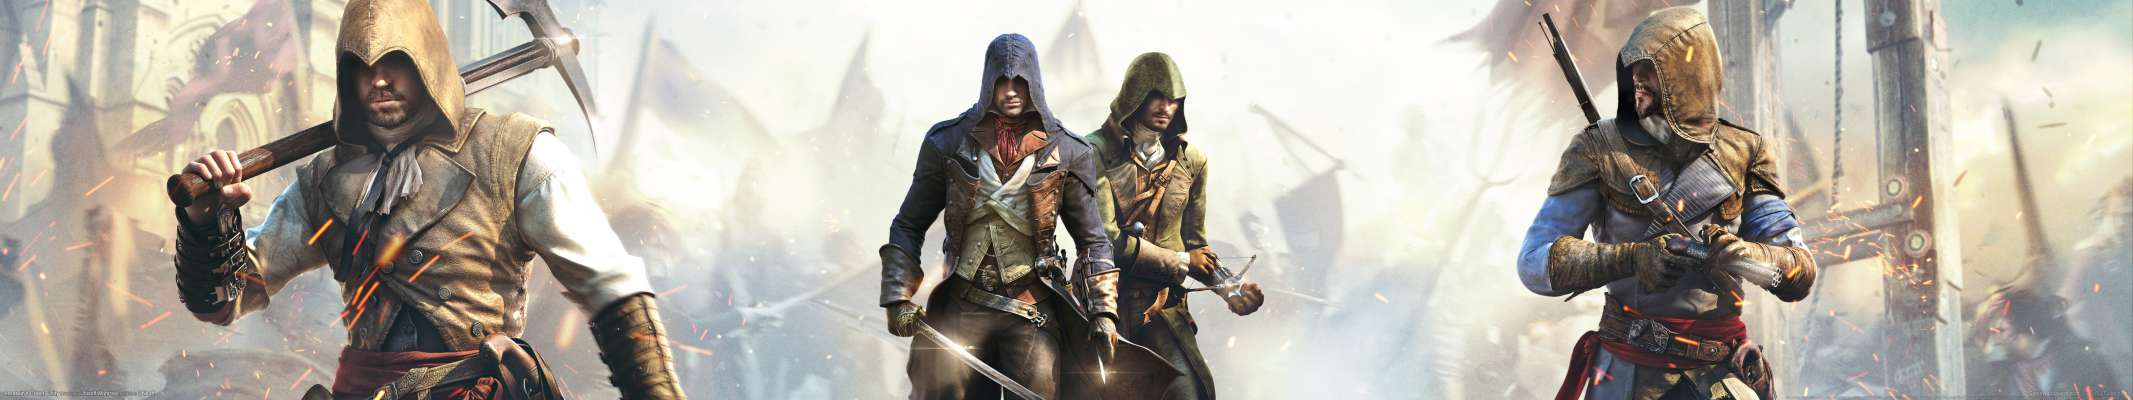 Assassin's Creed: Unity triple screen fond d'écran